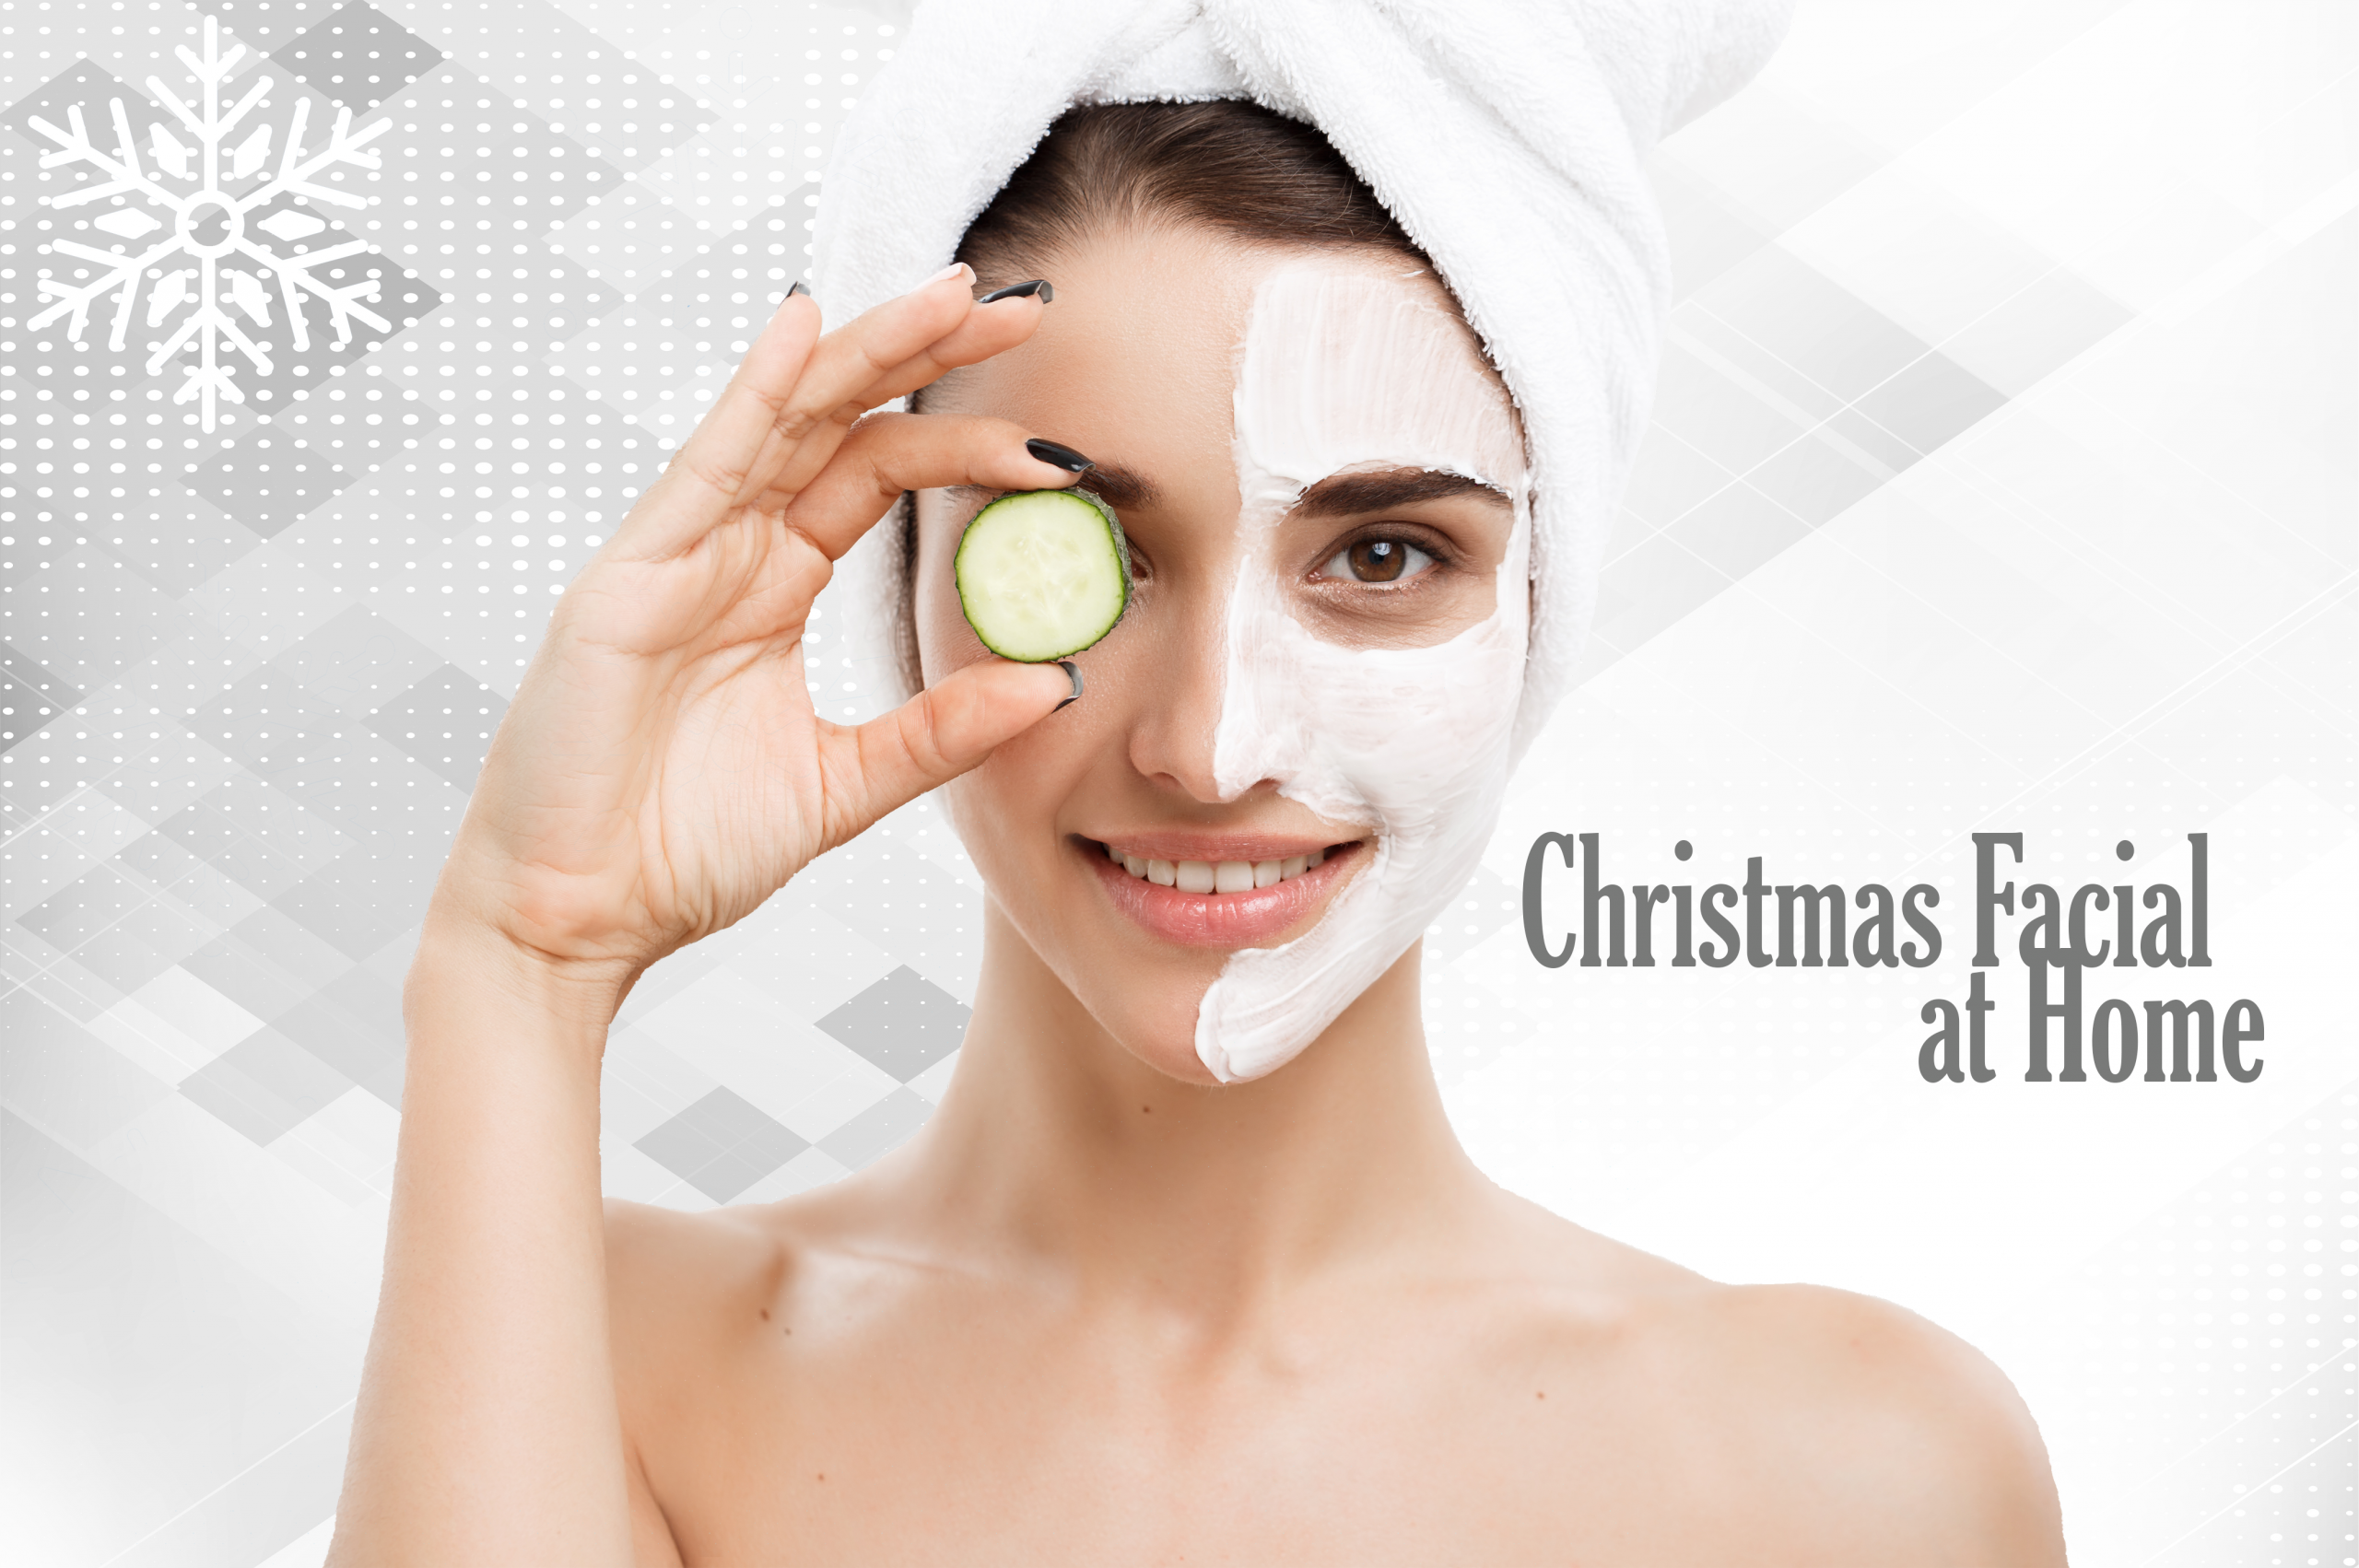 Christmas Facial at Home Steps